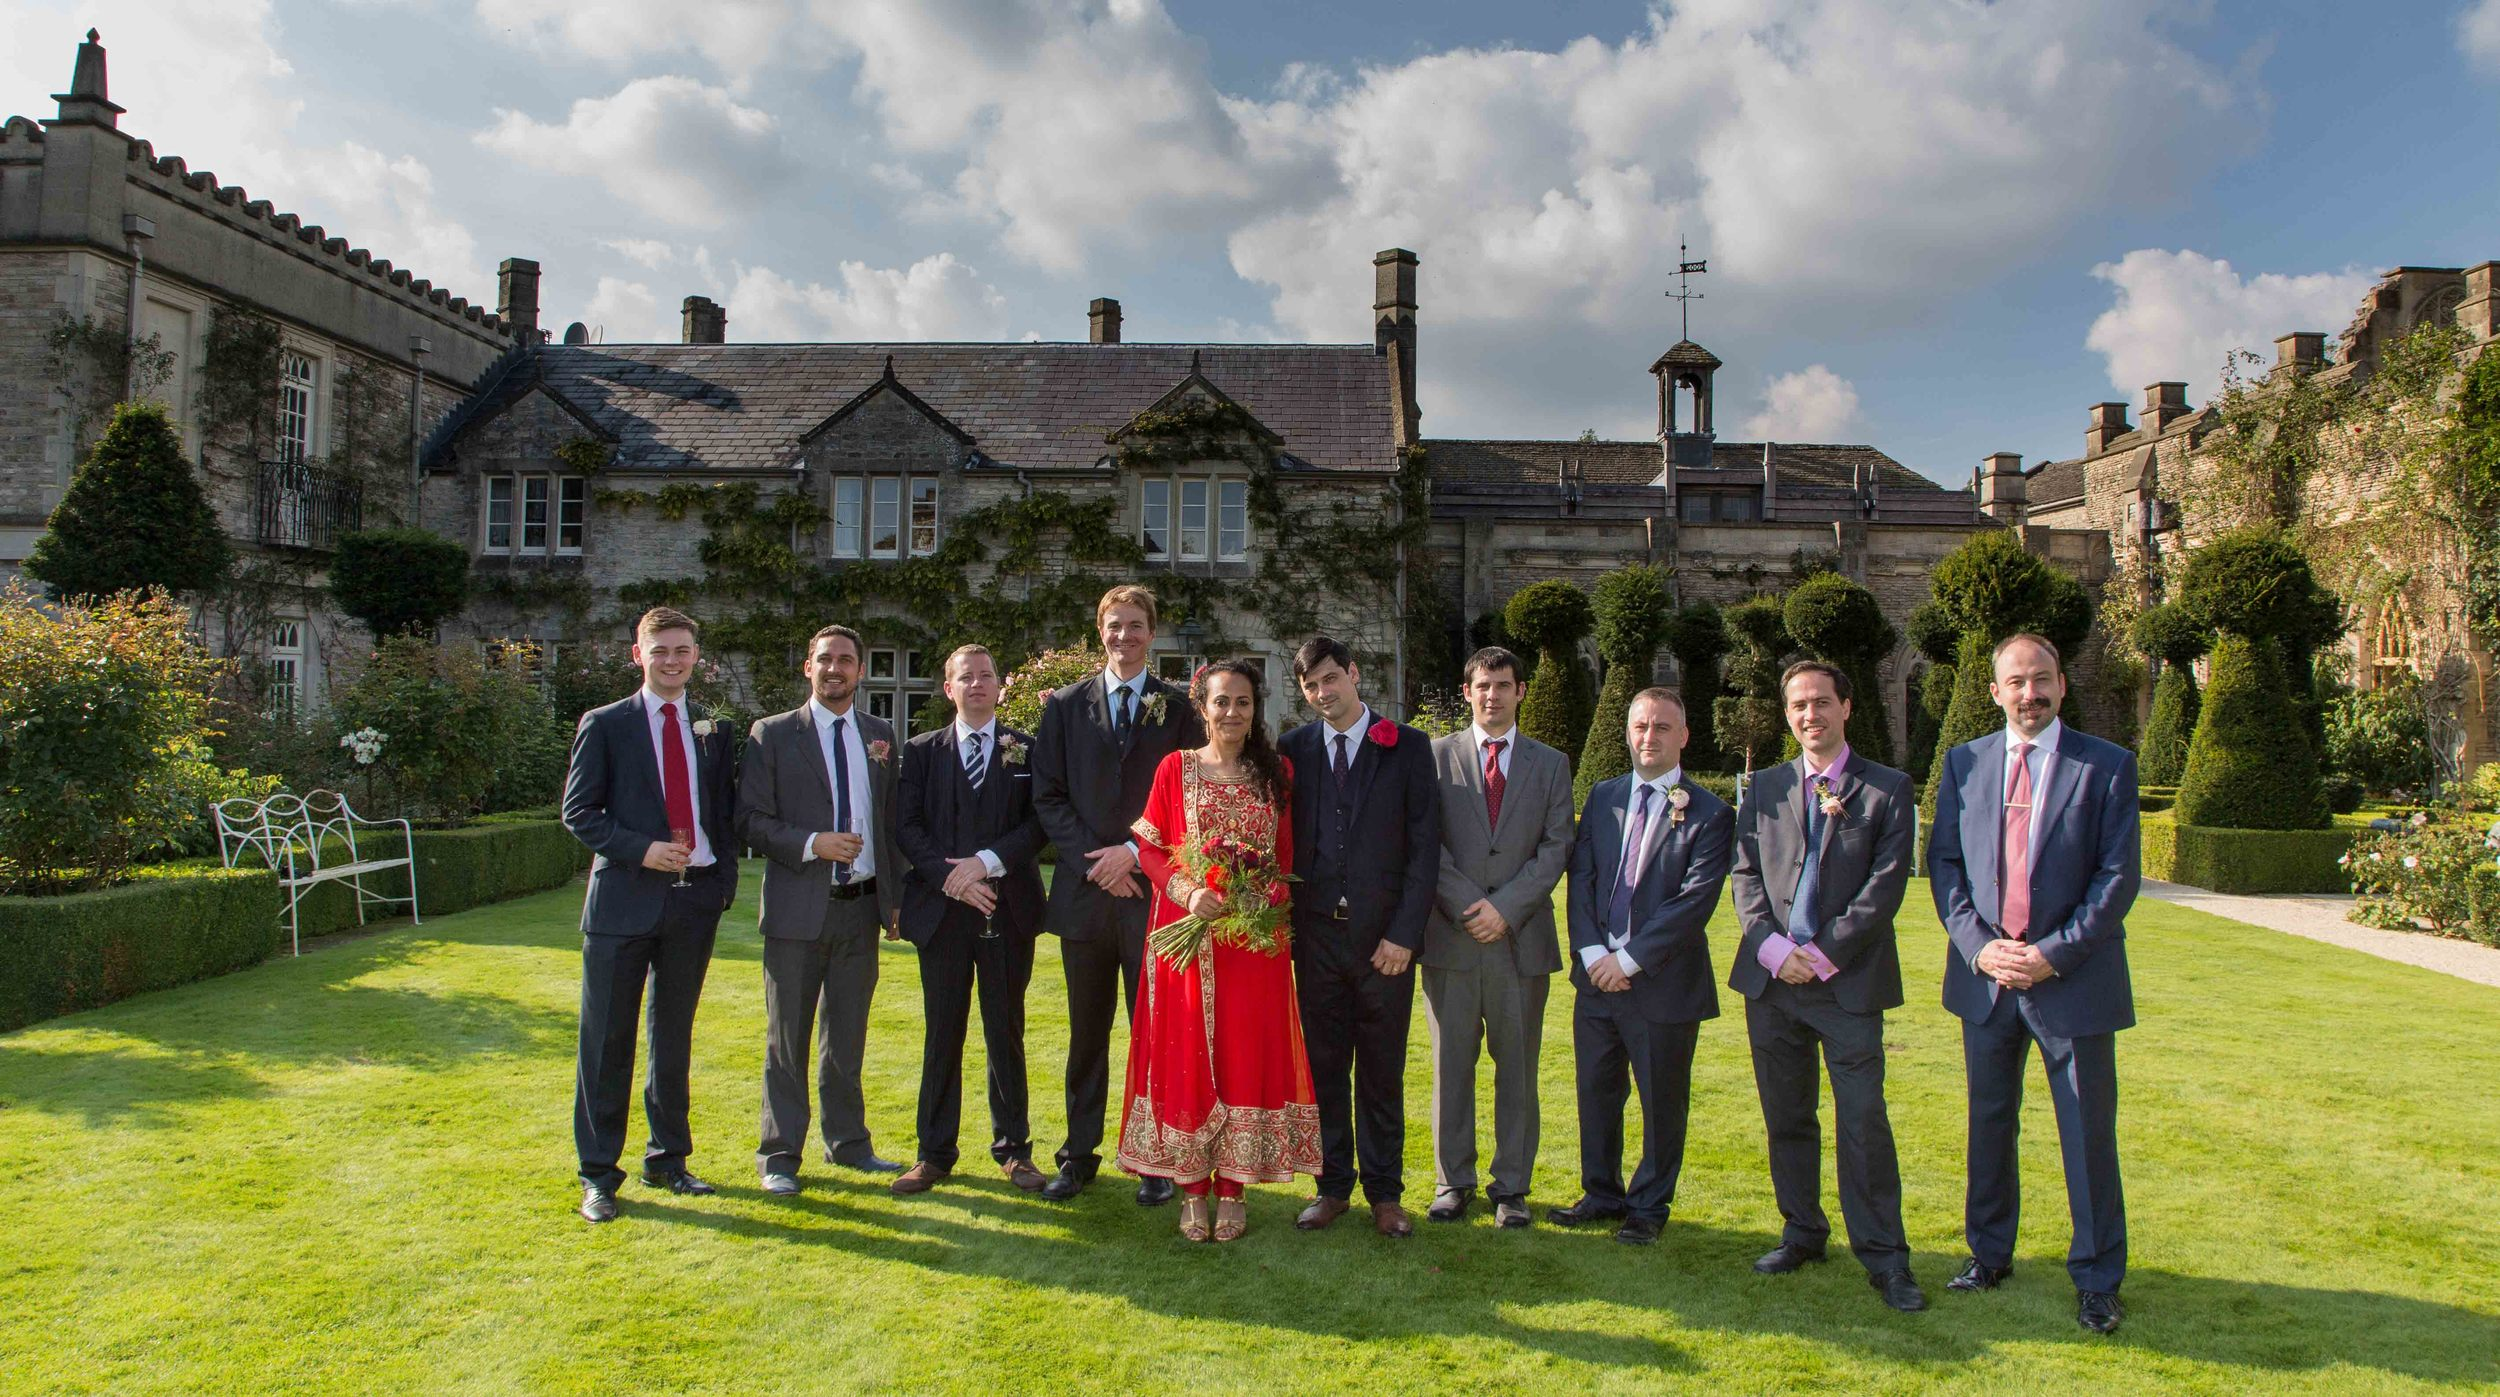 wedding-group-formal-shot-wiltshire